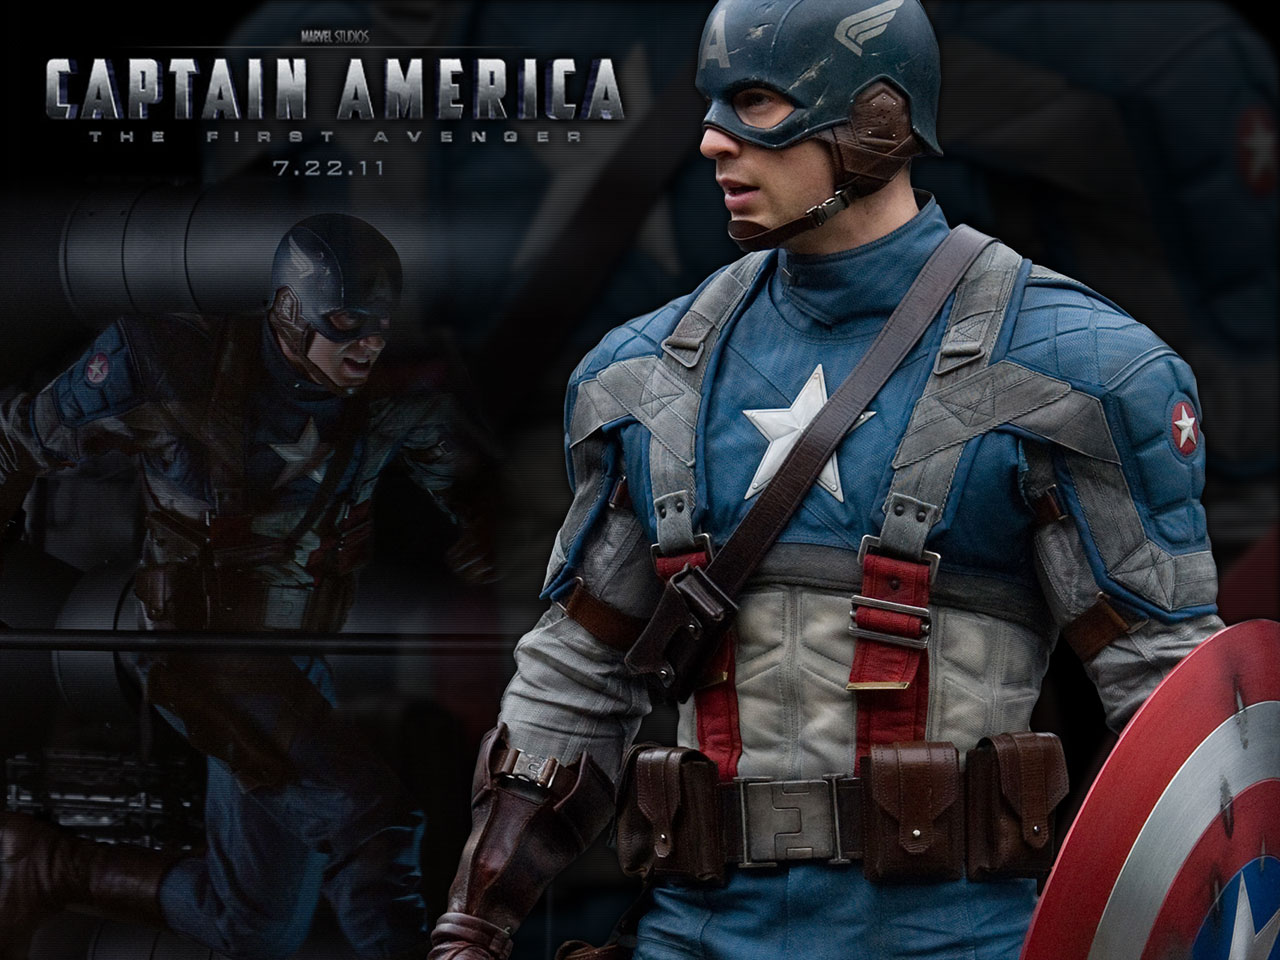 Captain America The First Avenger HD Poster Wallpapers Download 1280x960